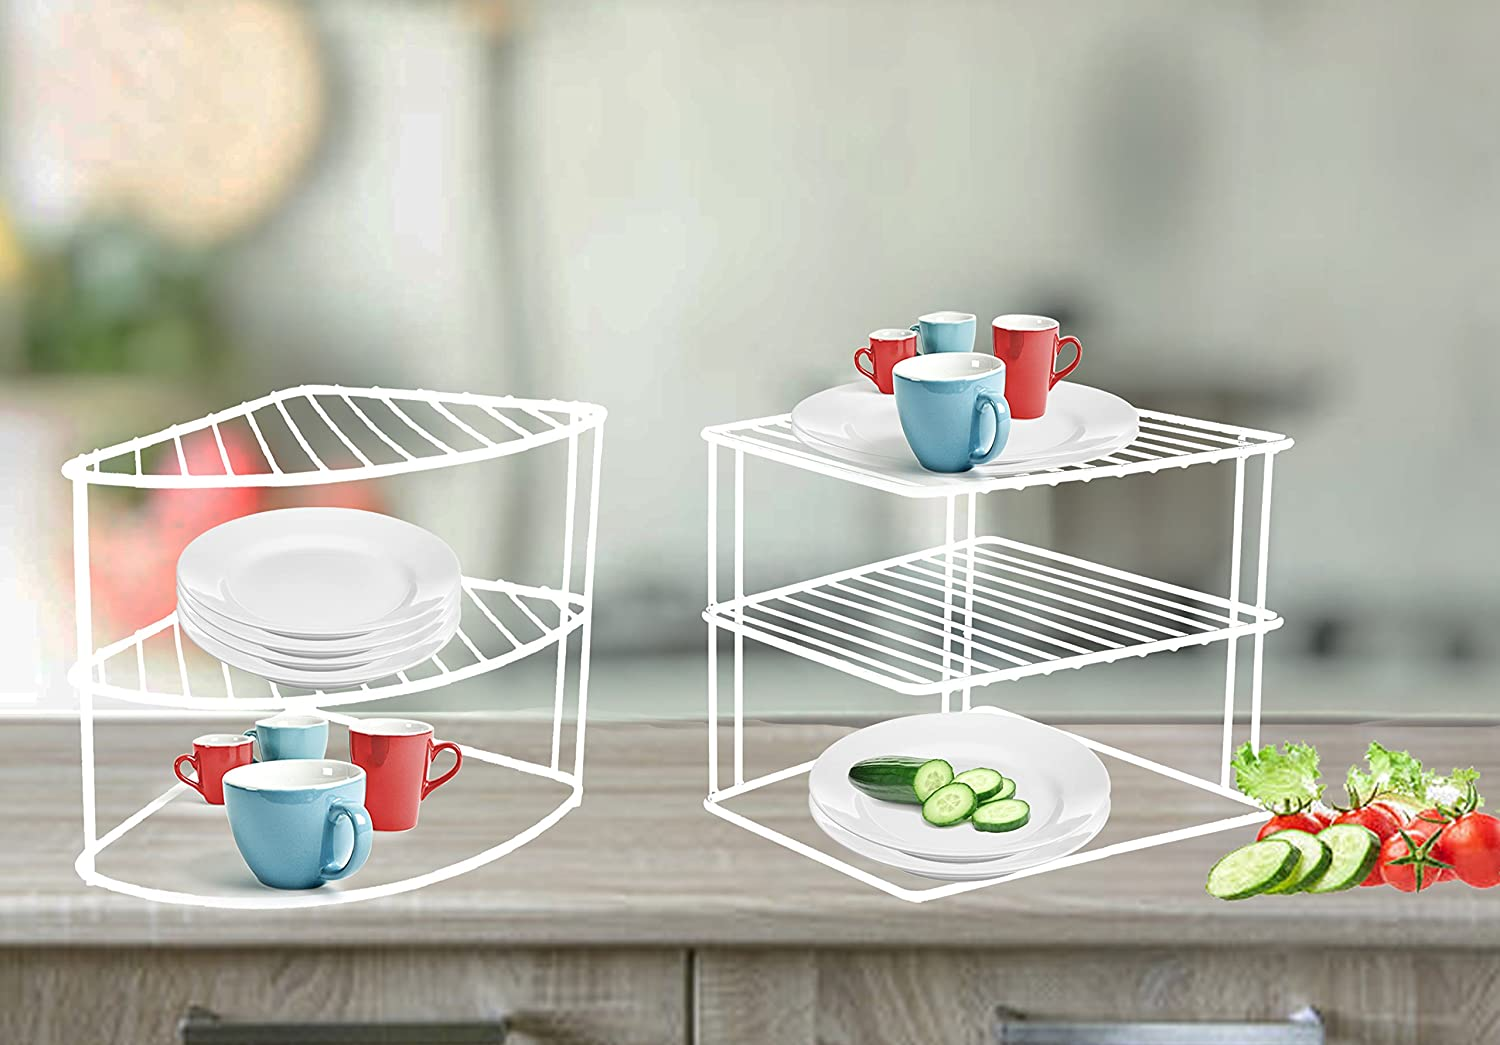 3 Tier Plate Stand Organizer for Kitchen Holder Storage Cupboard Or Worktop White (Fan Corner Rack) buyingzone